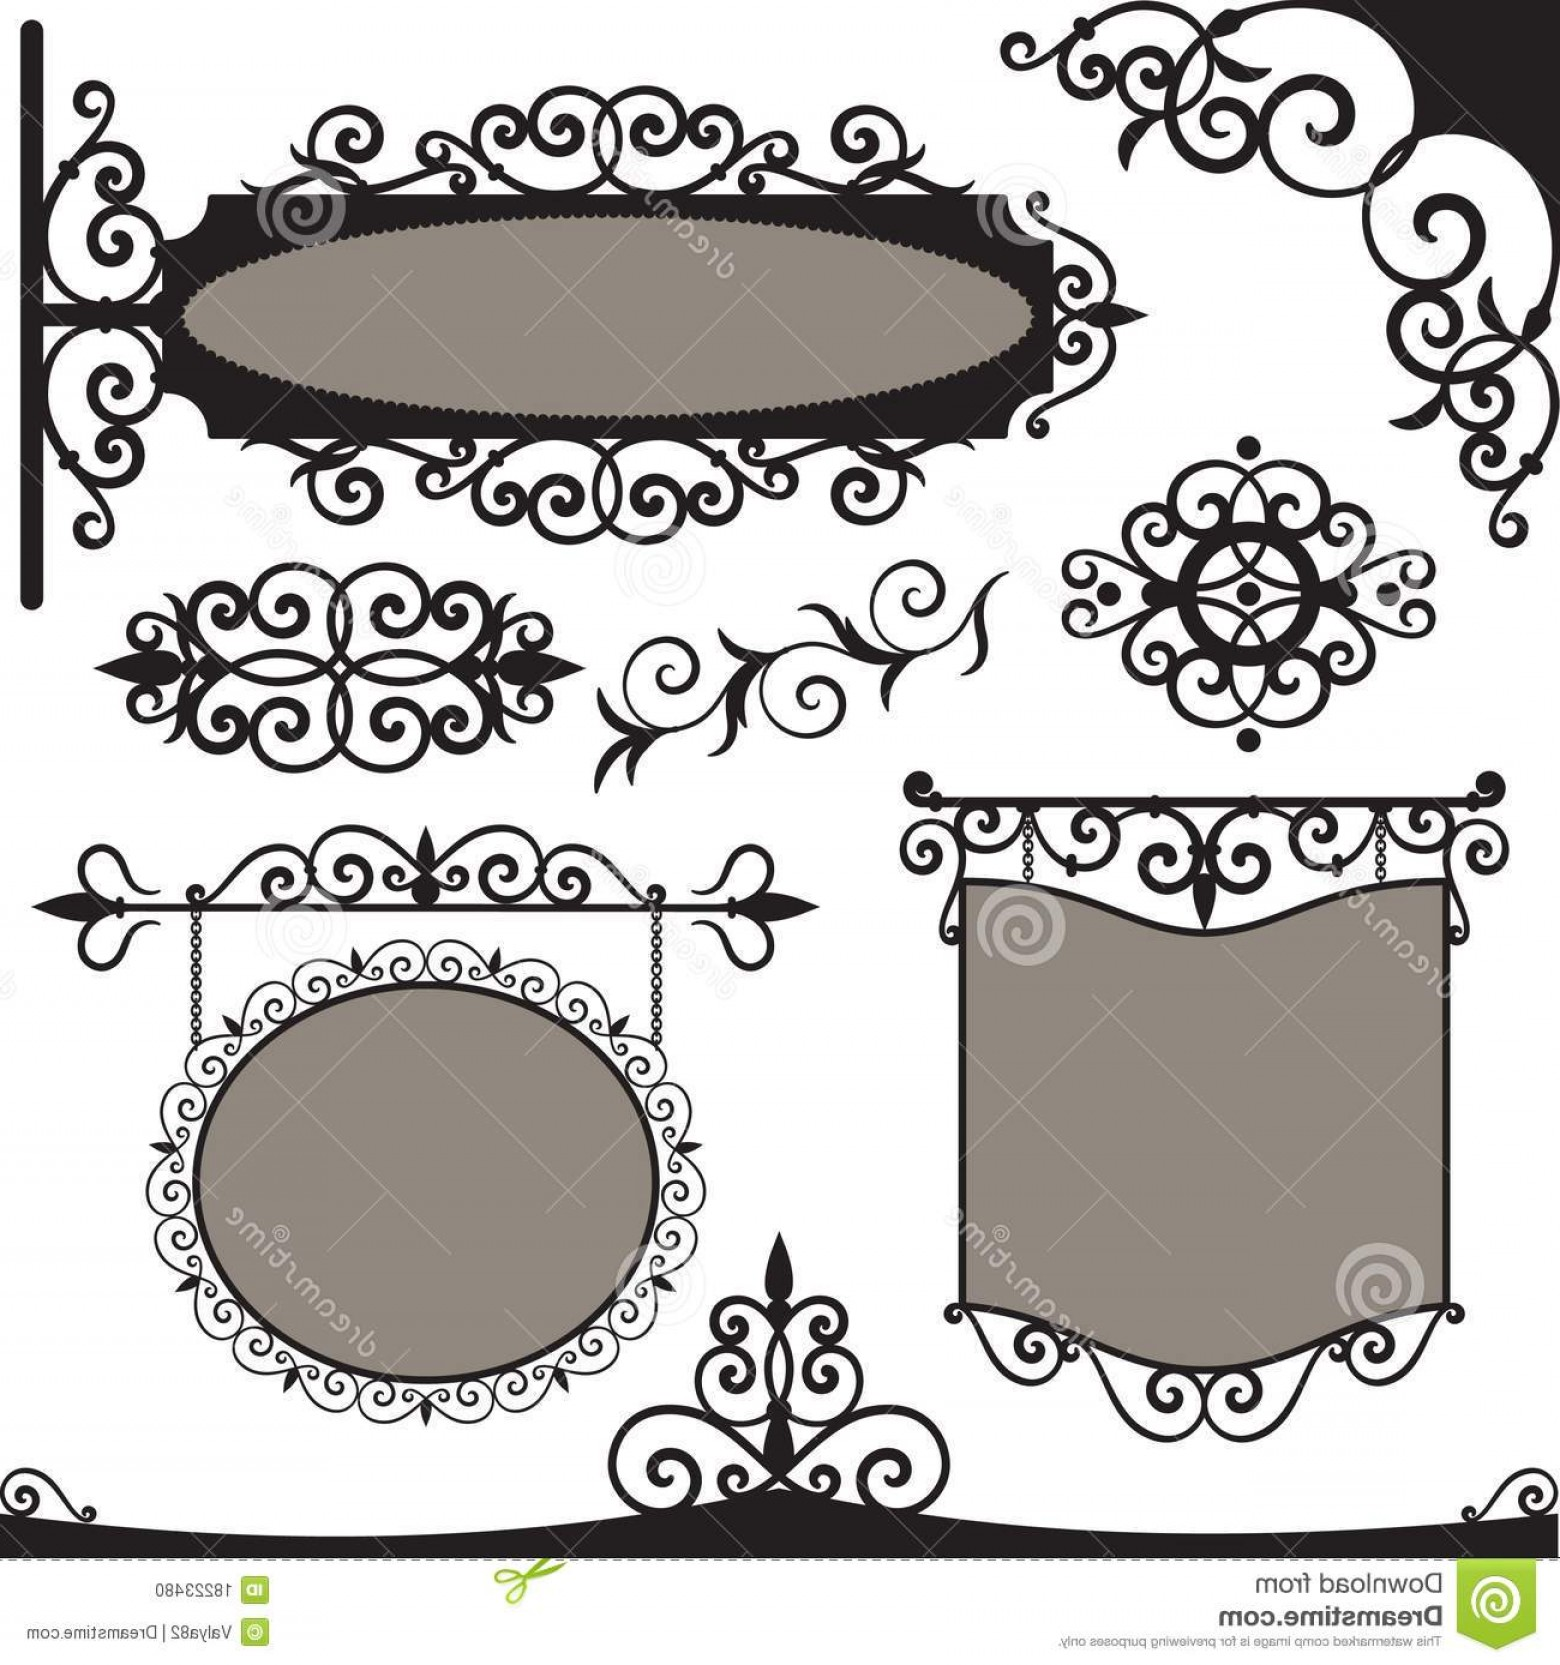 Vintage Sign Vector Clip Art: Stock Photo Vector Set Wrought Iron Vintage Signs Image